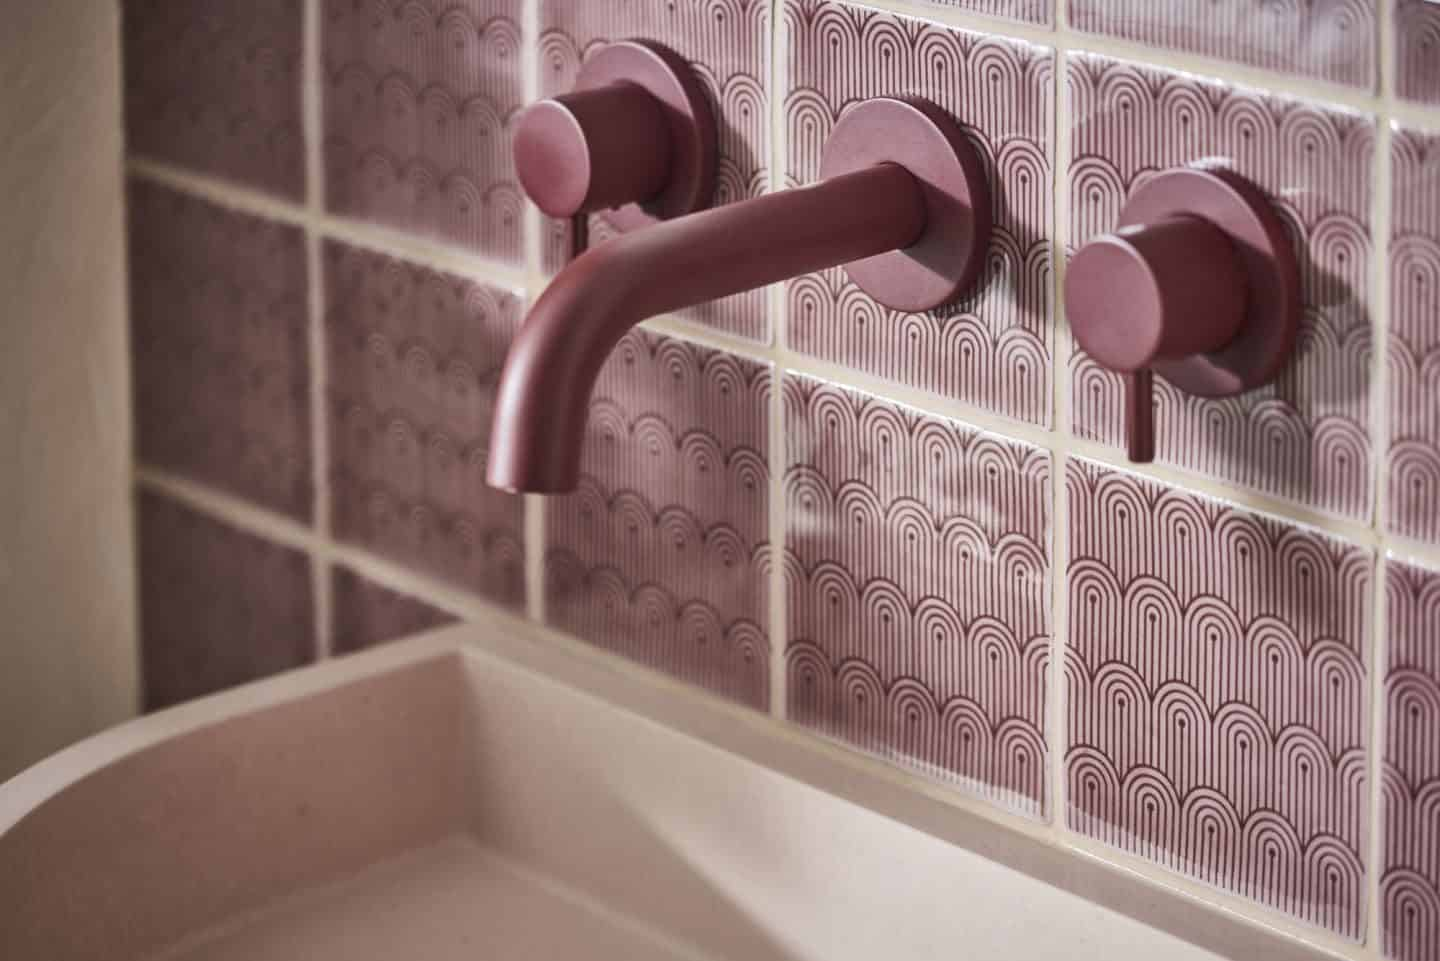 Original Style and 2LG Deco Tayberry Tile of the Year 2020 with berry coloured wall mounted bathroom tap